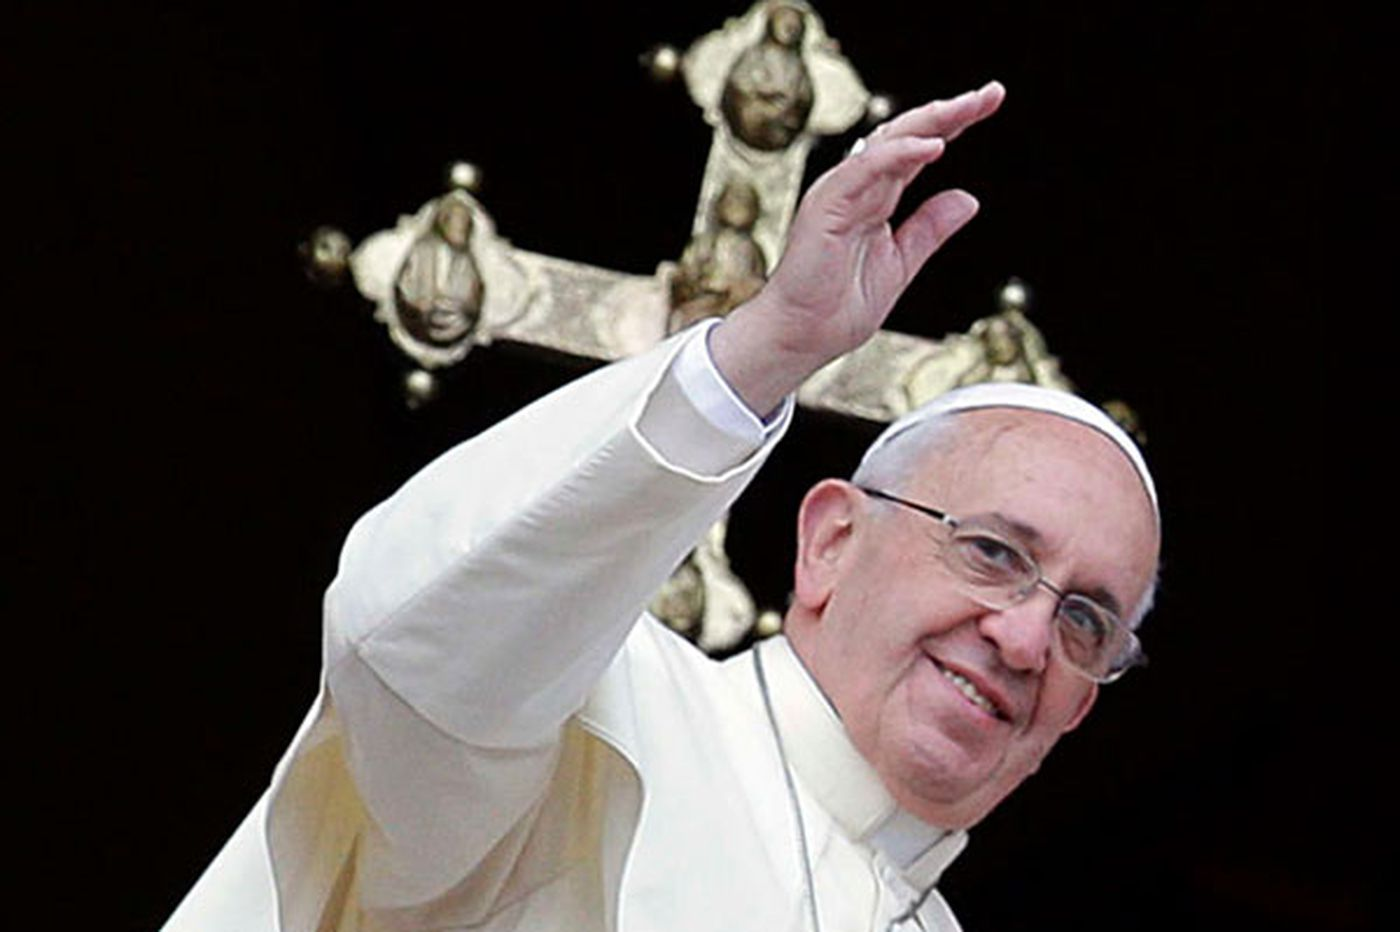 Pope prays for peace, people everywhere